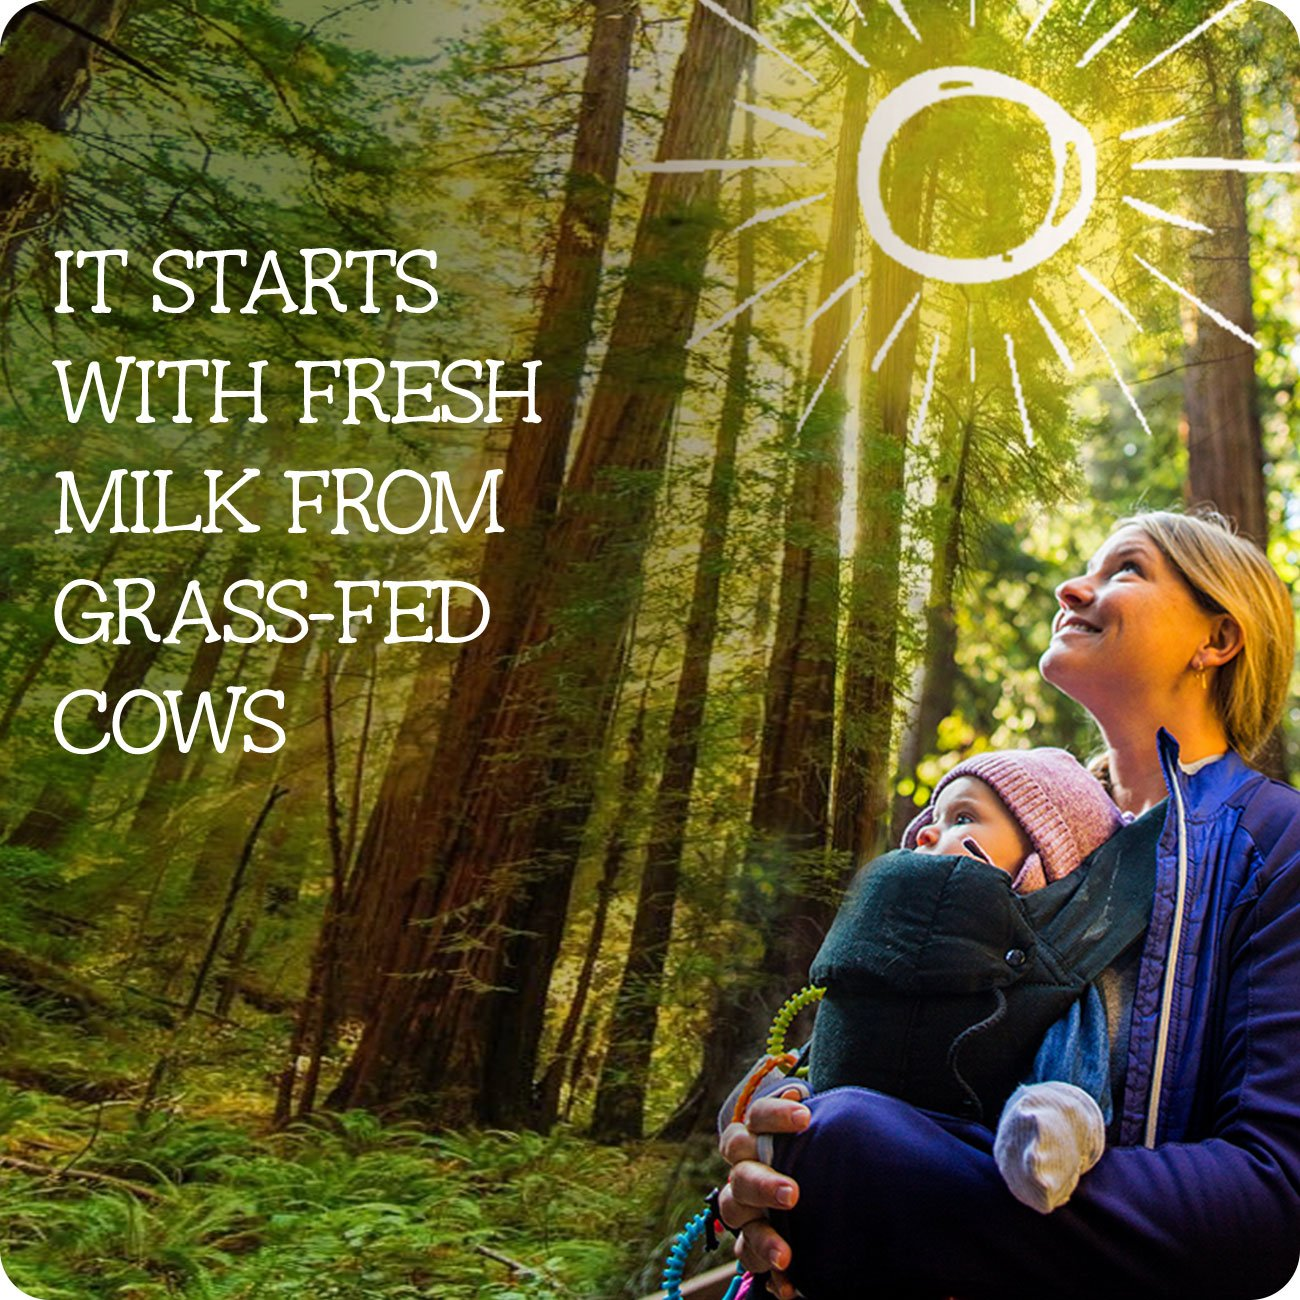 Pure Bliss by Similac Toddler Drink with Probiotics, Starts with Fresh Milk from Grass-Fed Cows, 12.4 ounces (Pack of 4) by Similac (Image #2)